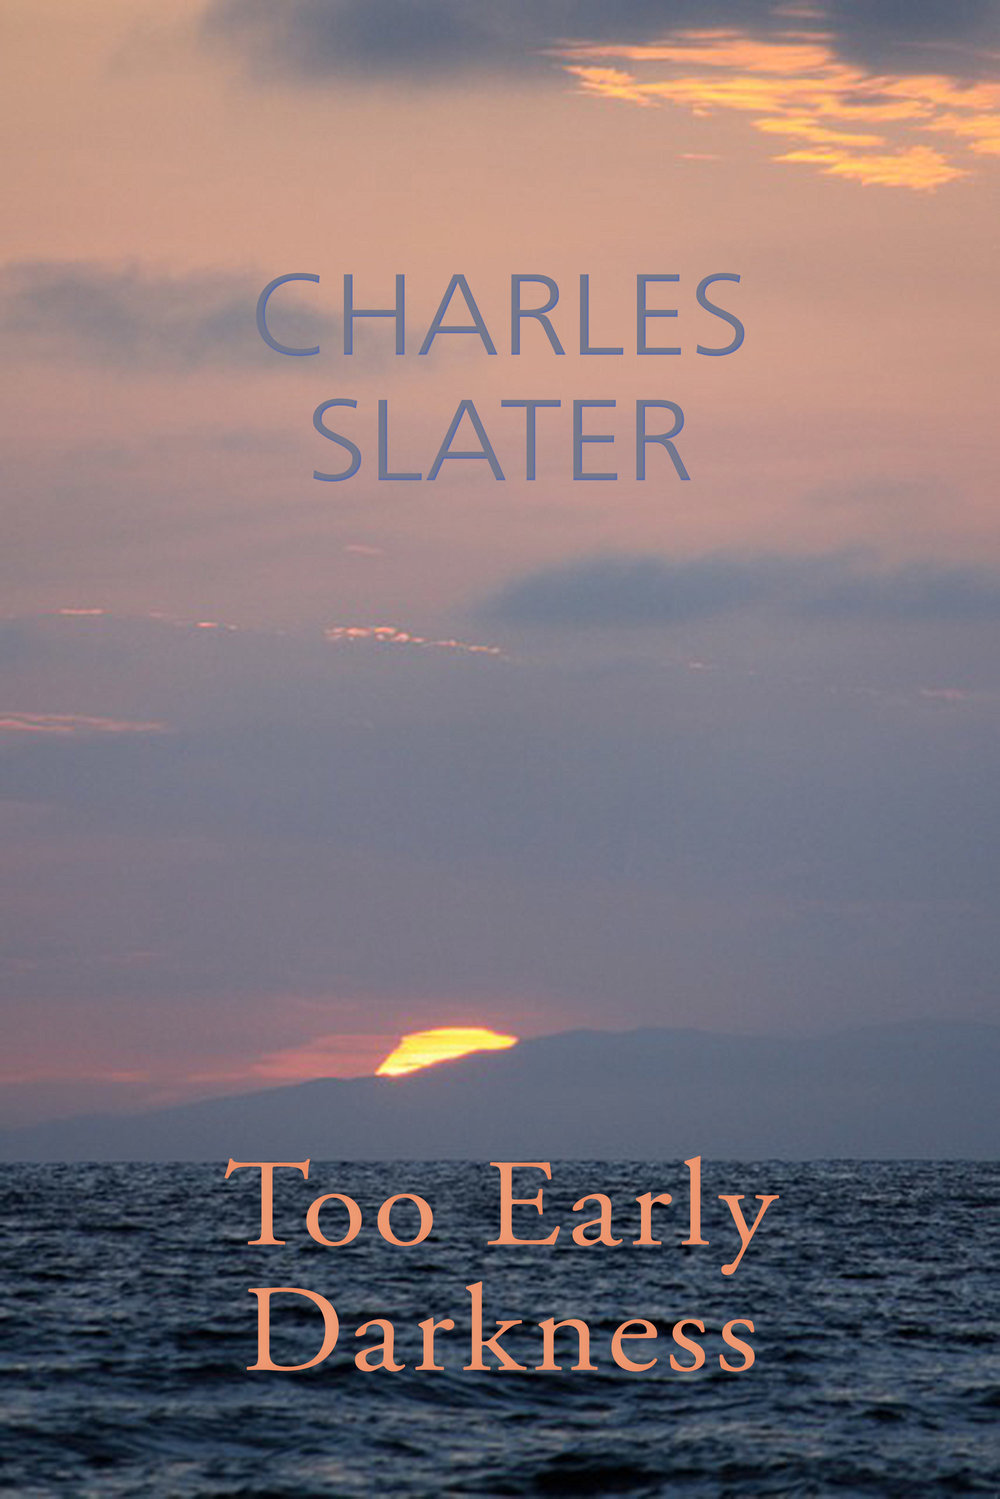 too-early-darkness-by-charles-slater_cover-art.jpg